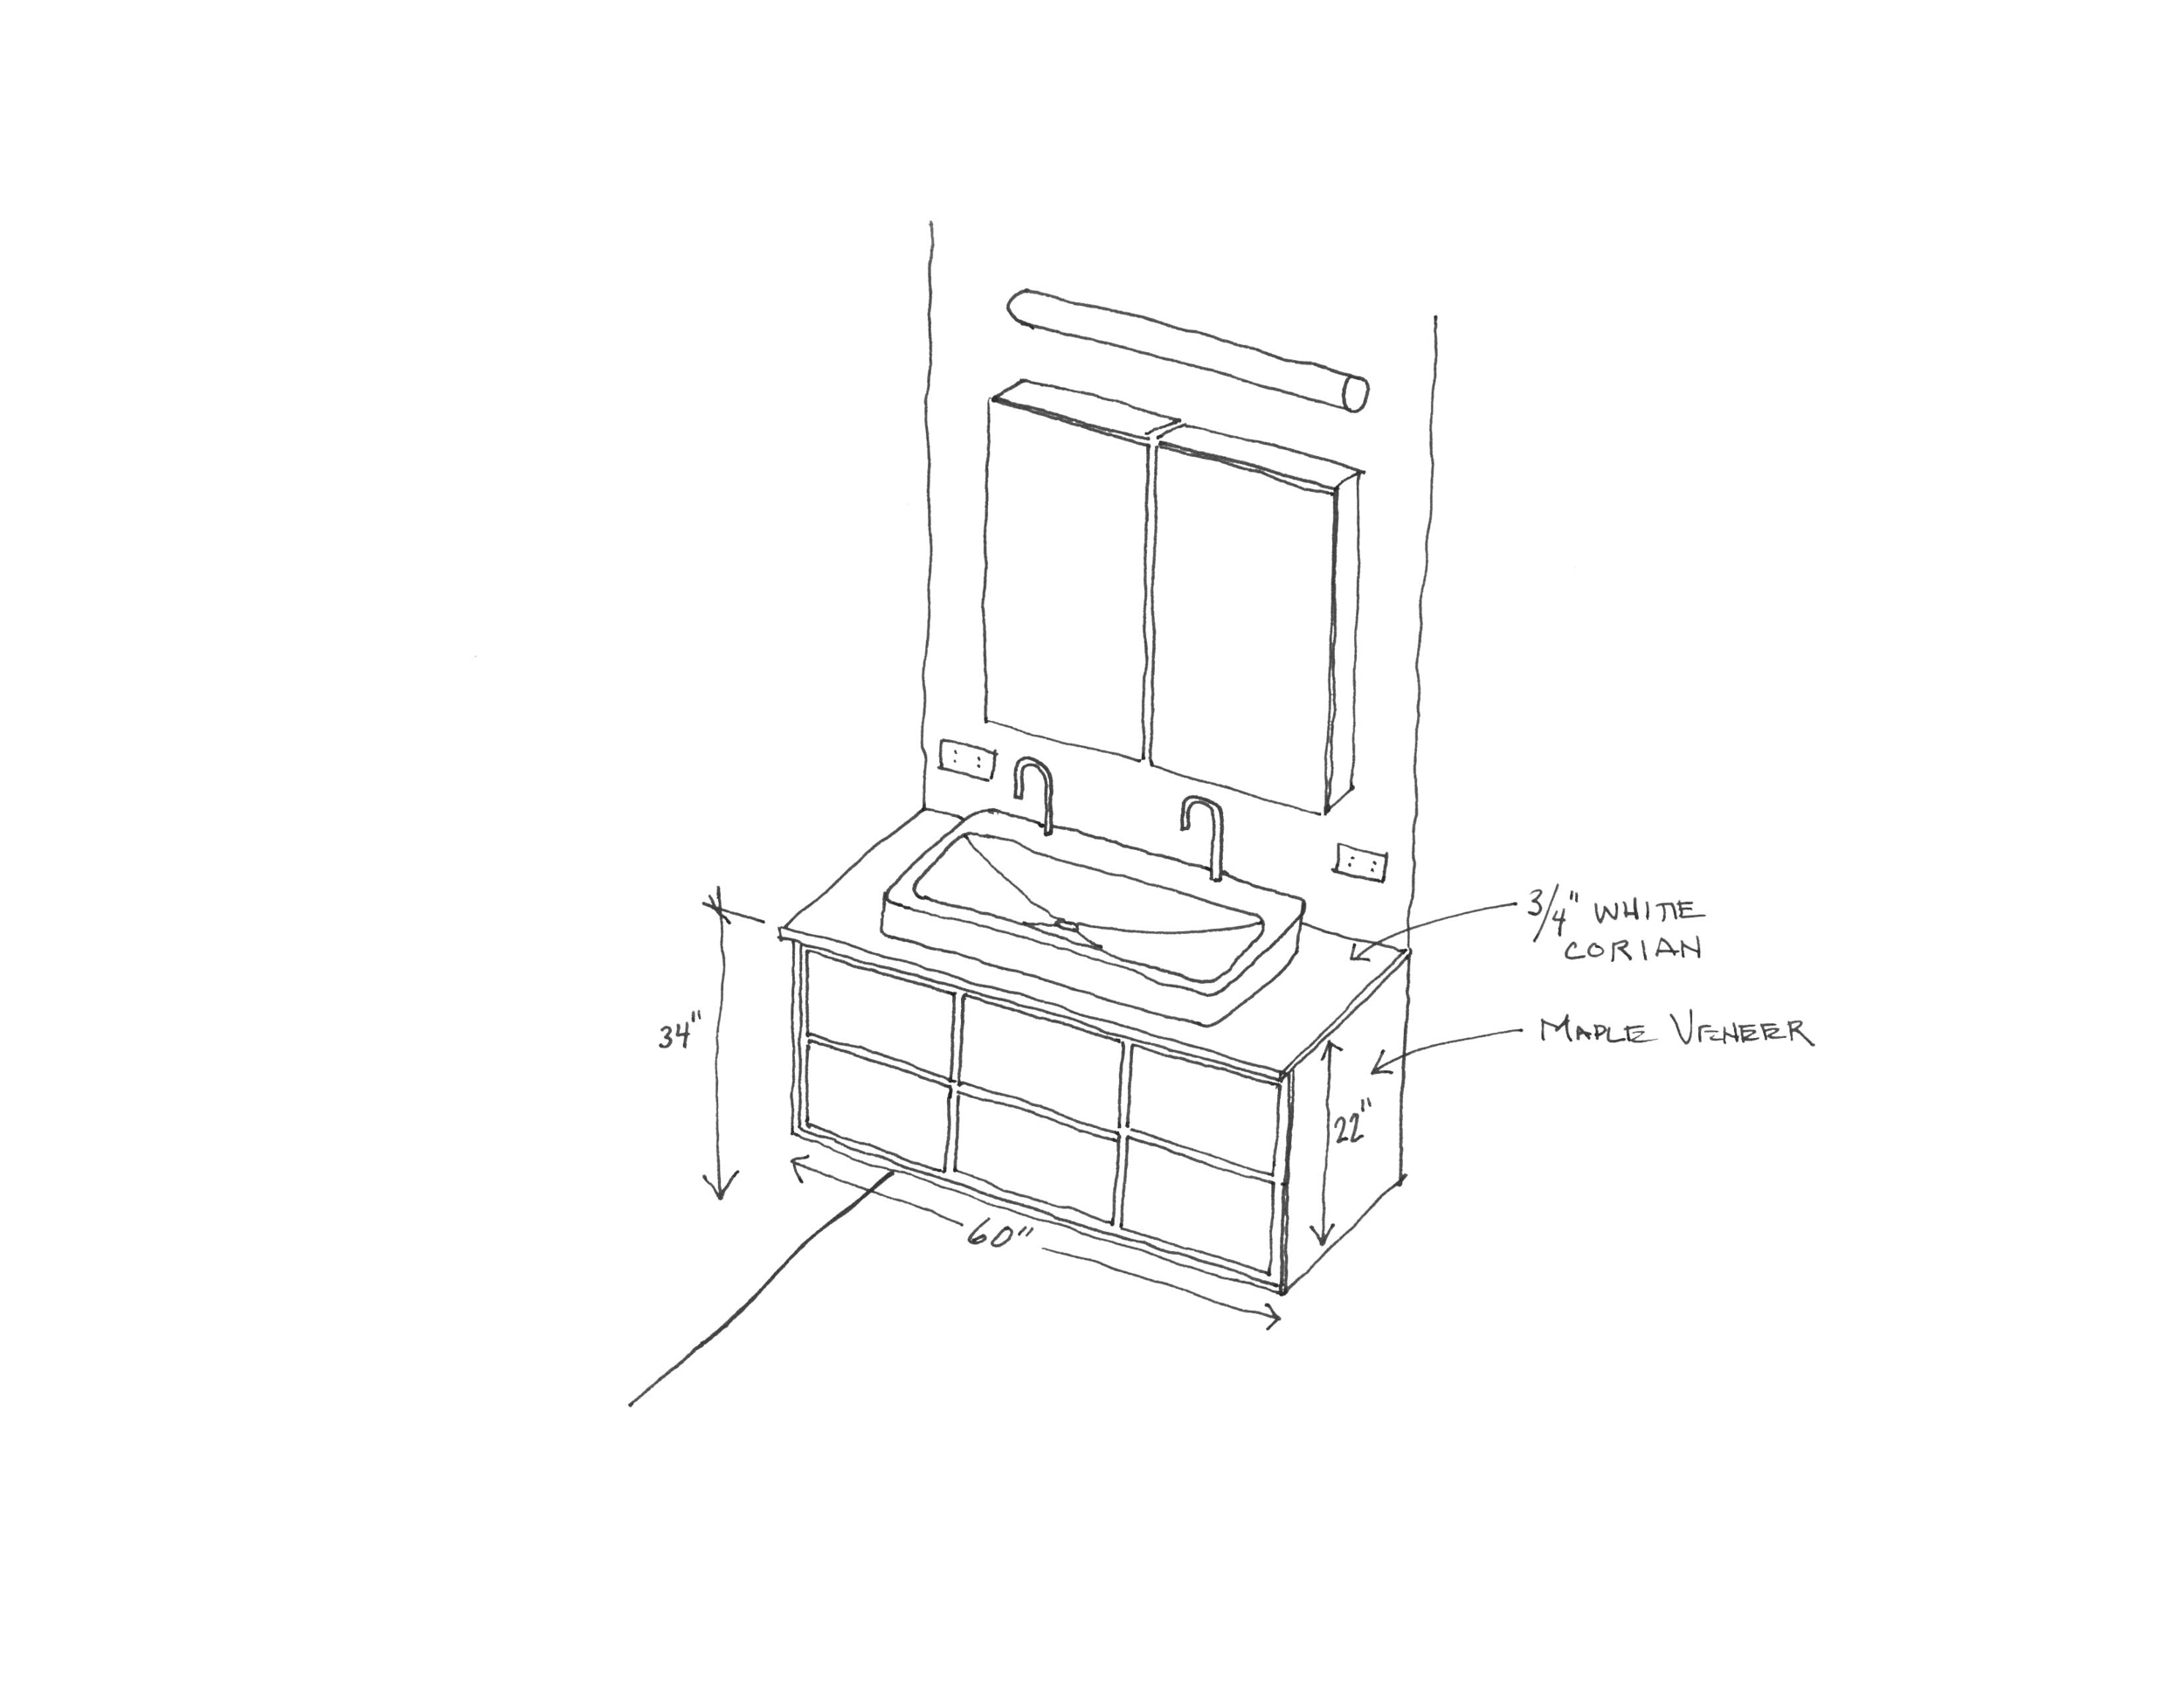 Chicago-custom-house-bathroom-vanity-sketch.jpg